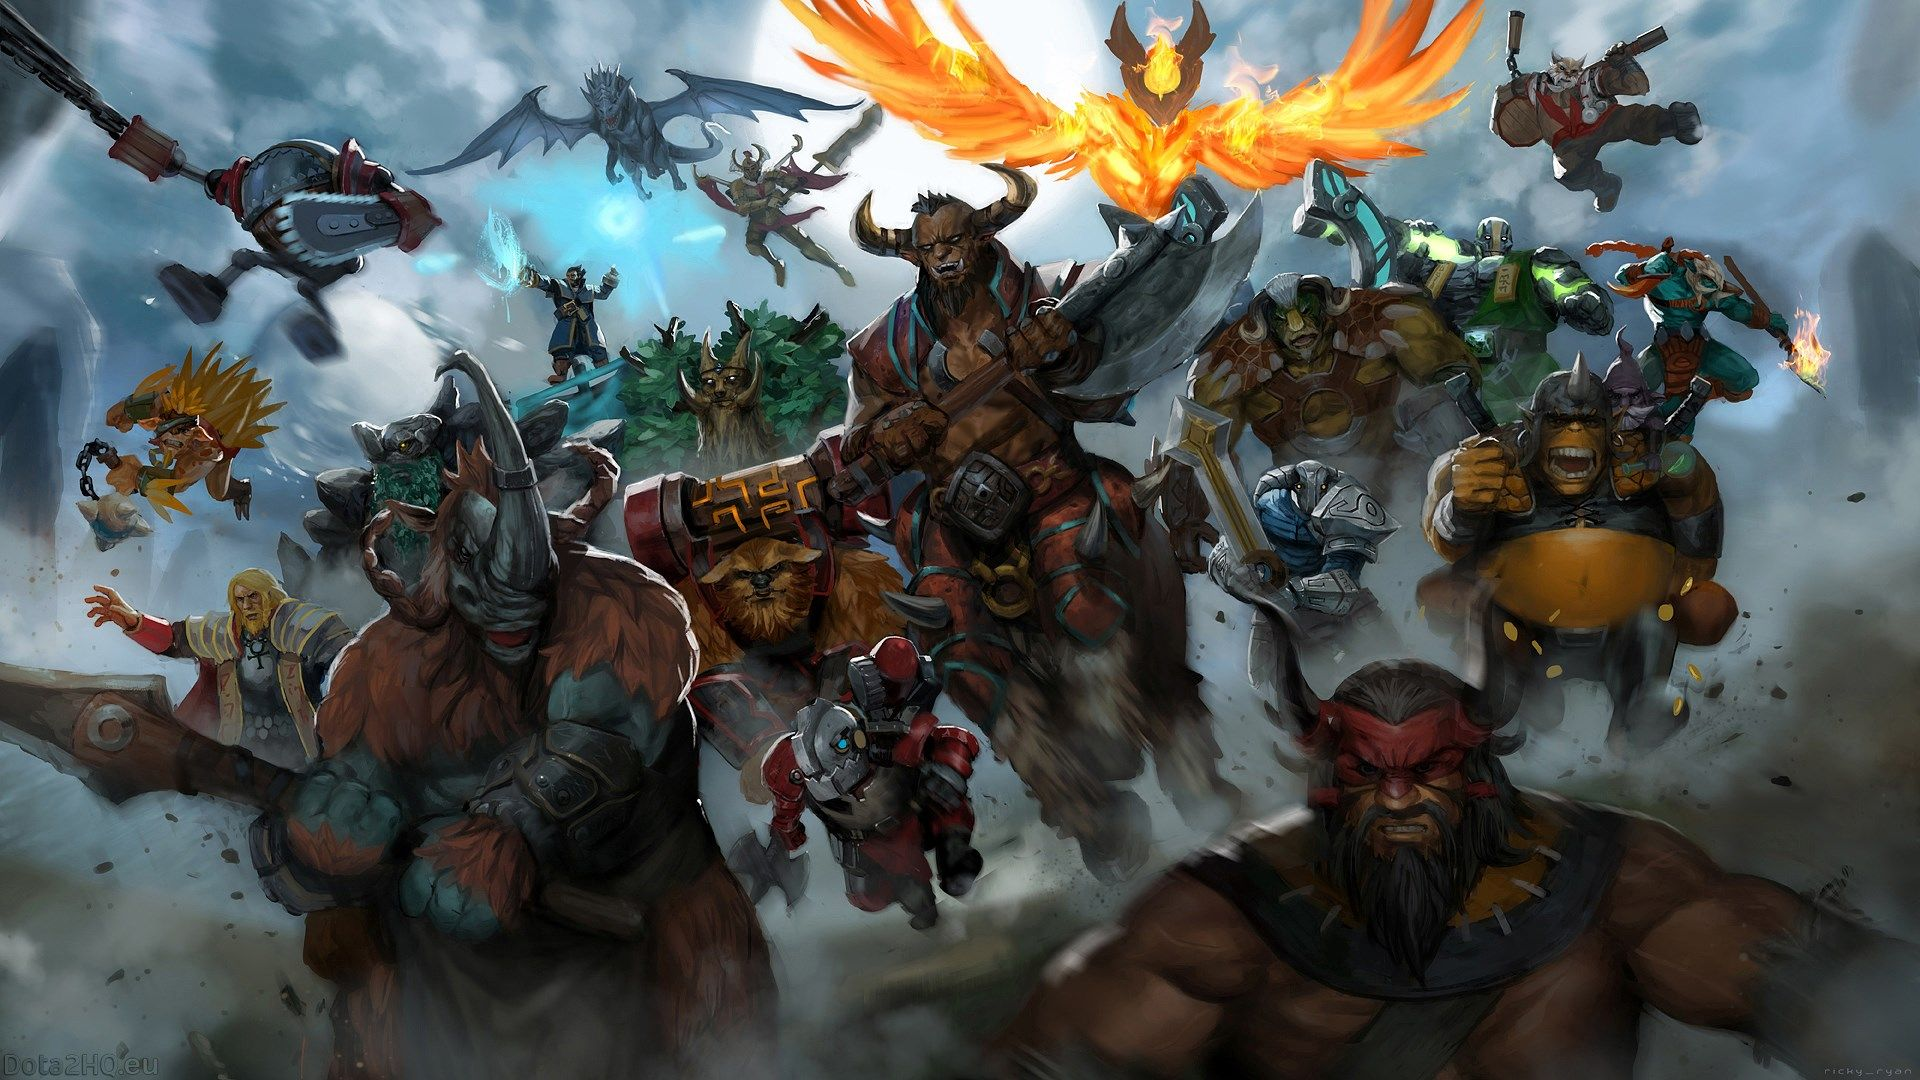 1920x1080 Alchemist Dota 2 Background Dota 2 Wallpaper Dota2 Heroes Dota 2